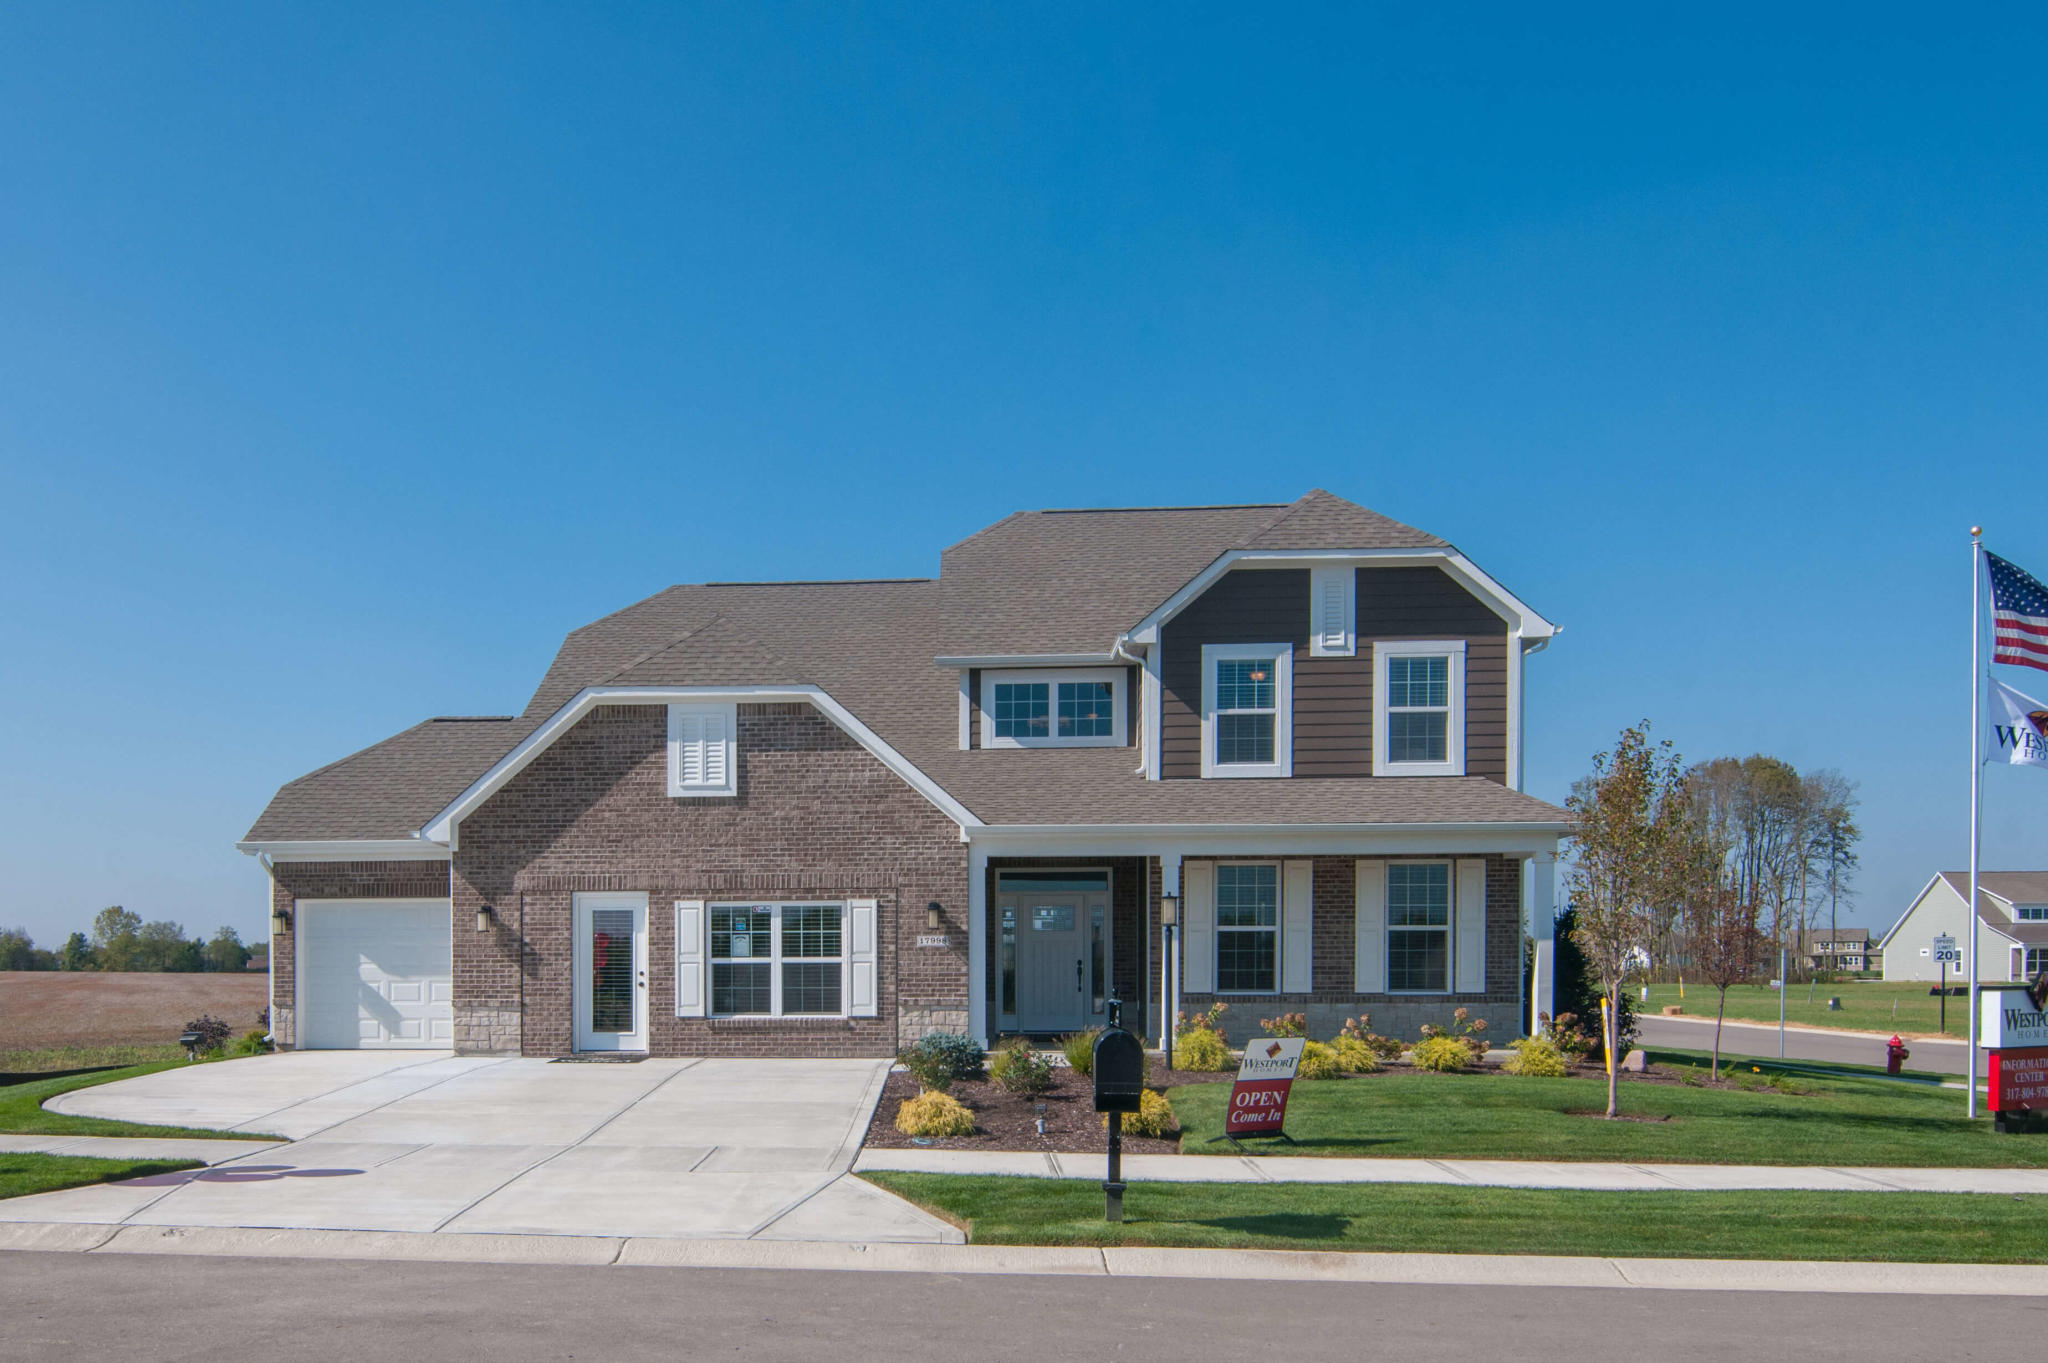 Sheffield Park by Westport Homes of Indianapolis New Homes for Sale -  Westfield, IN - 14 Photos | Trulia